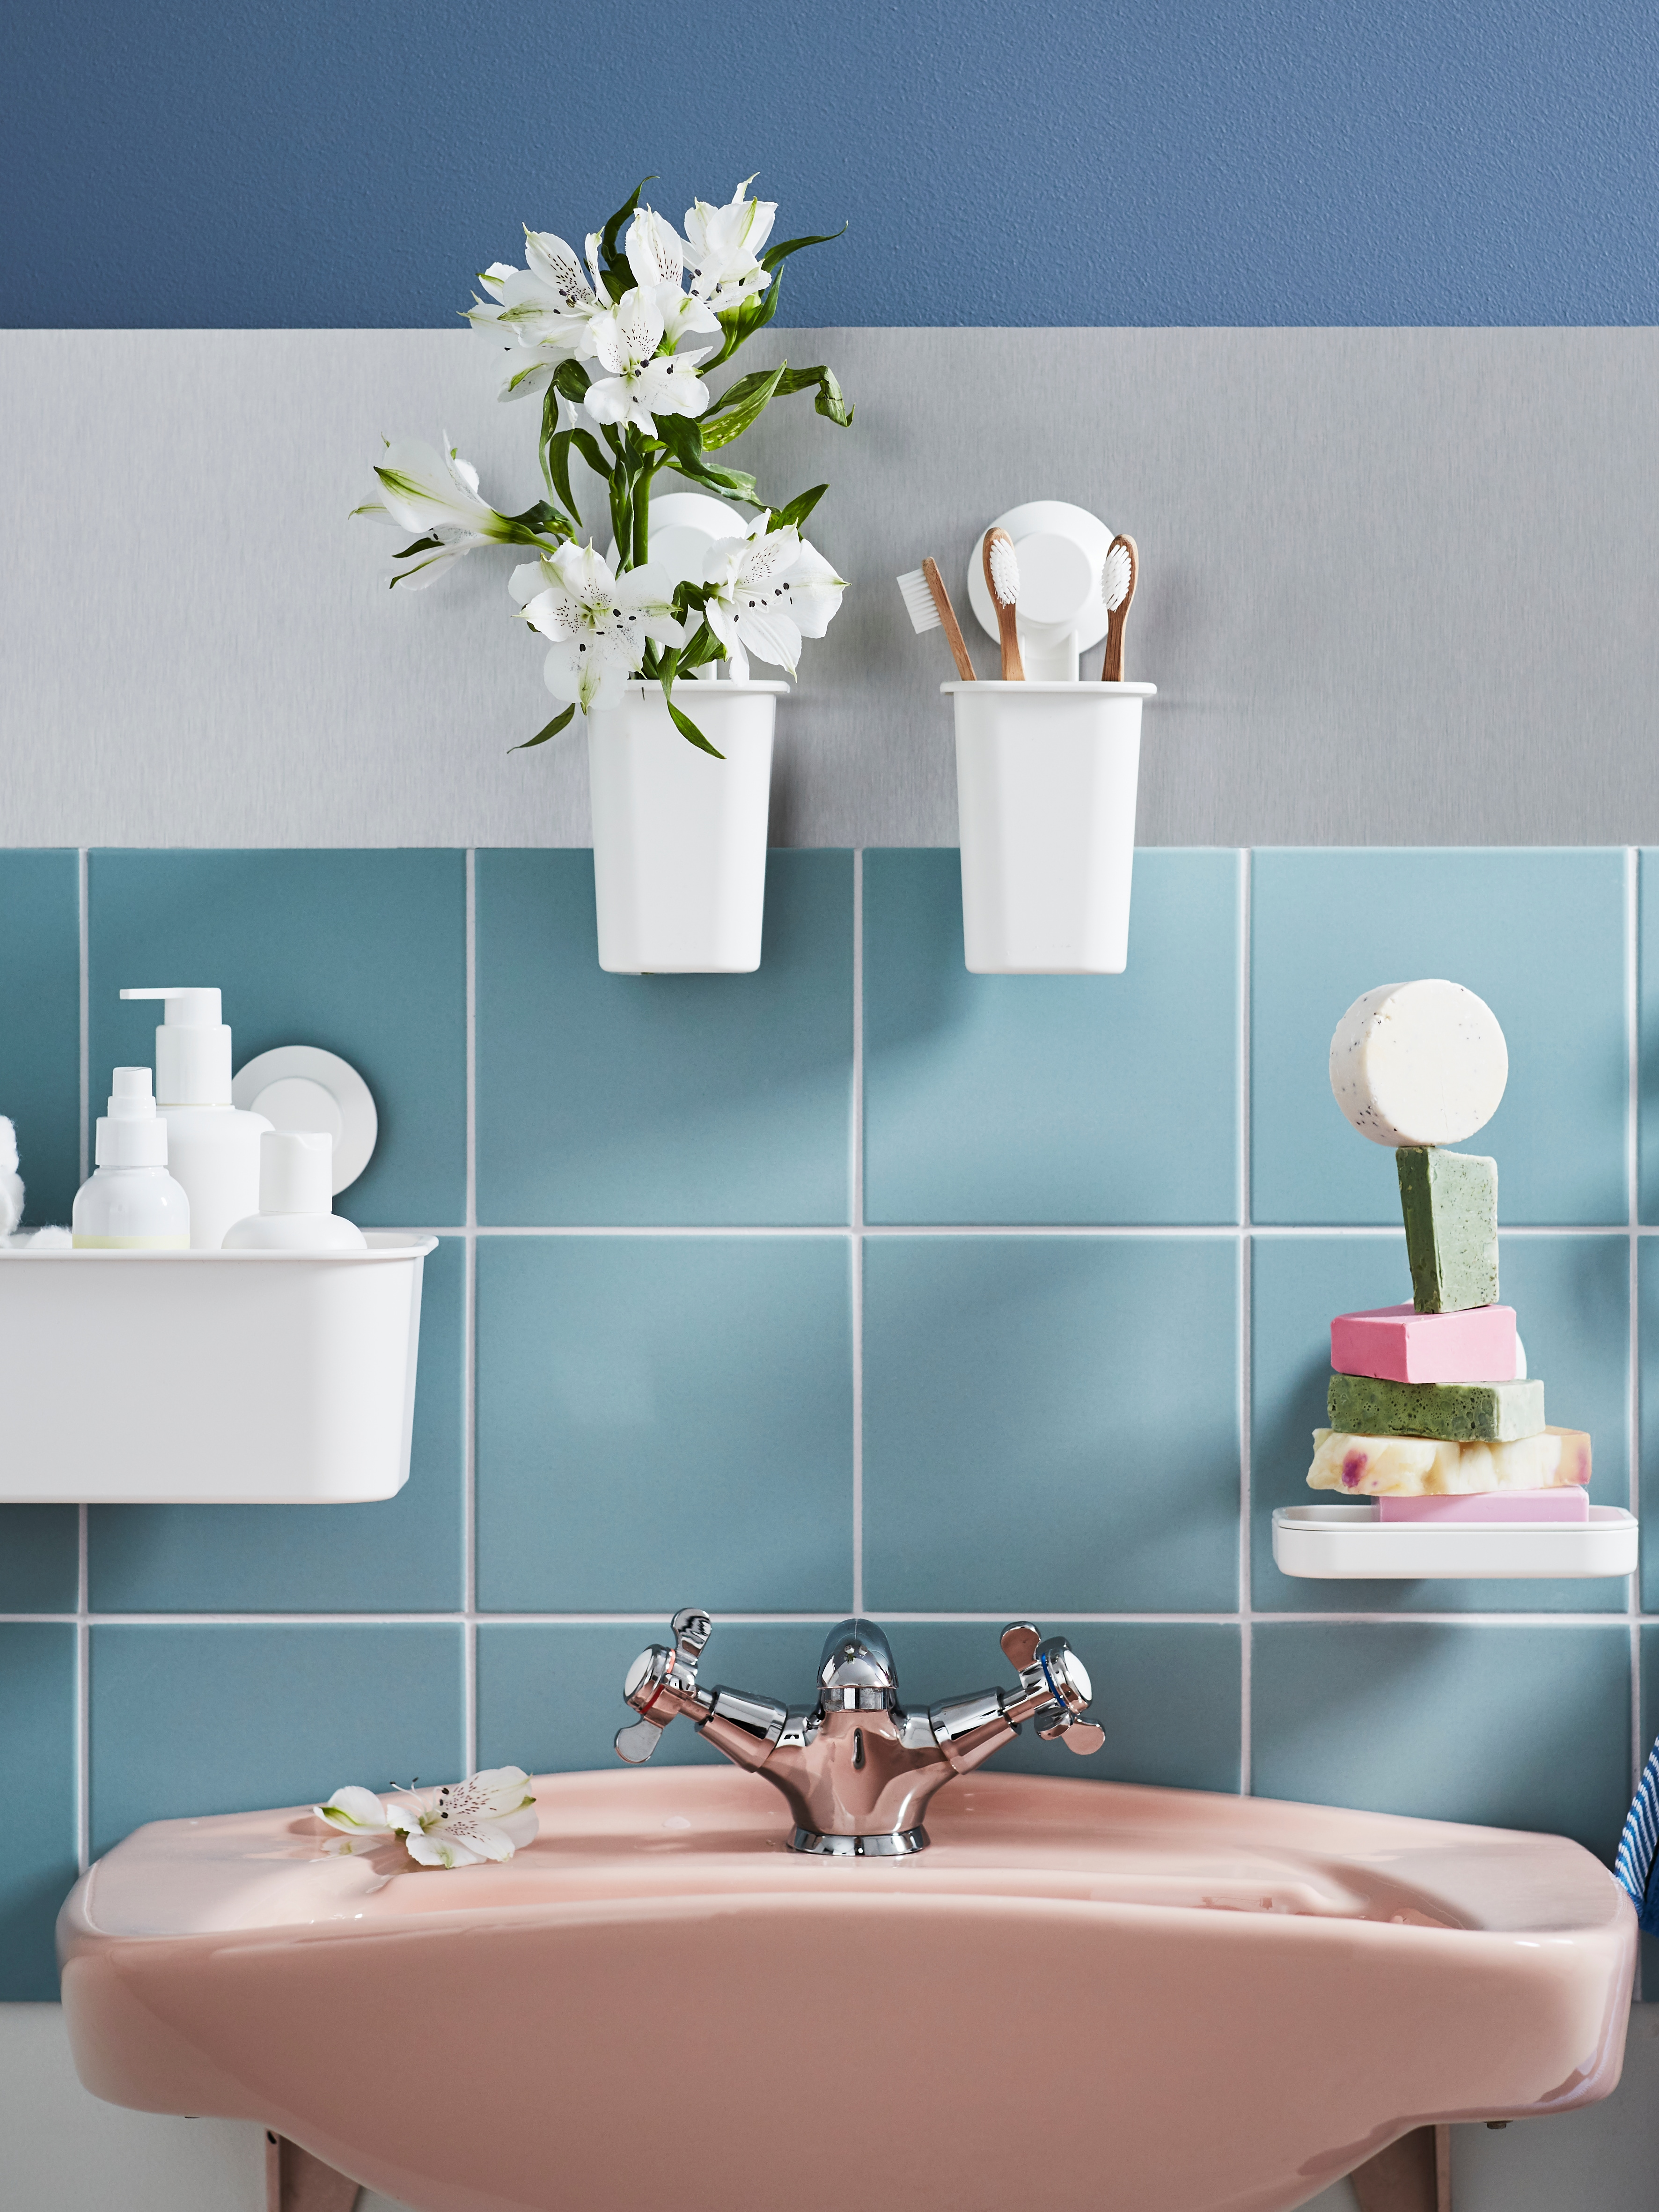 Bathroom with blue tiles, white basket, toothbrush holders and soap dish with suction cups, wash-basin, mixer tap, flowers.